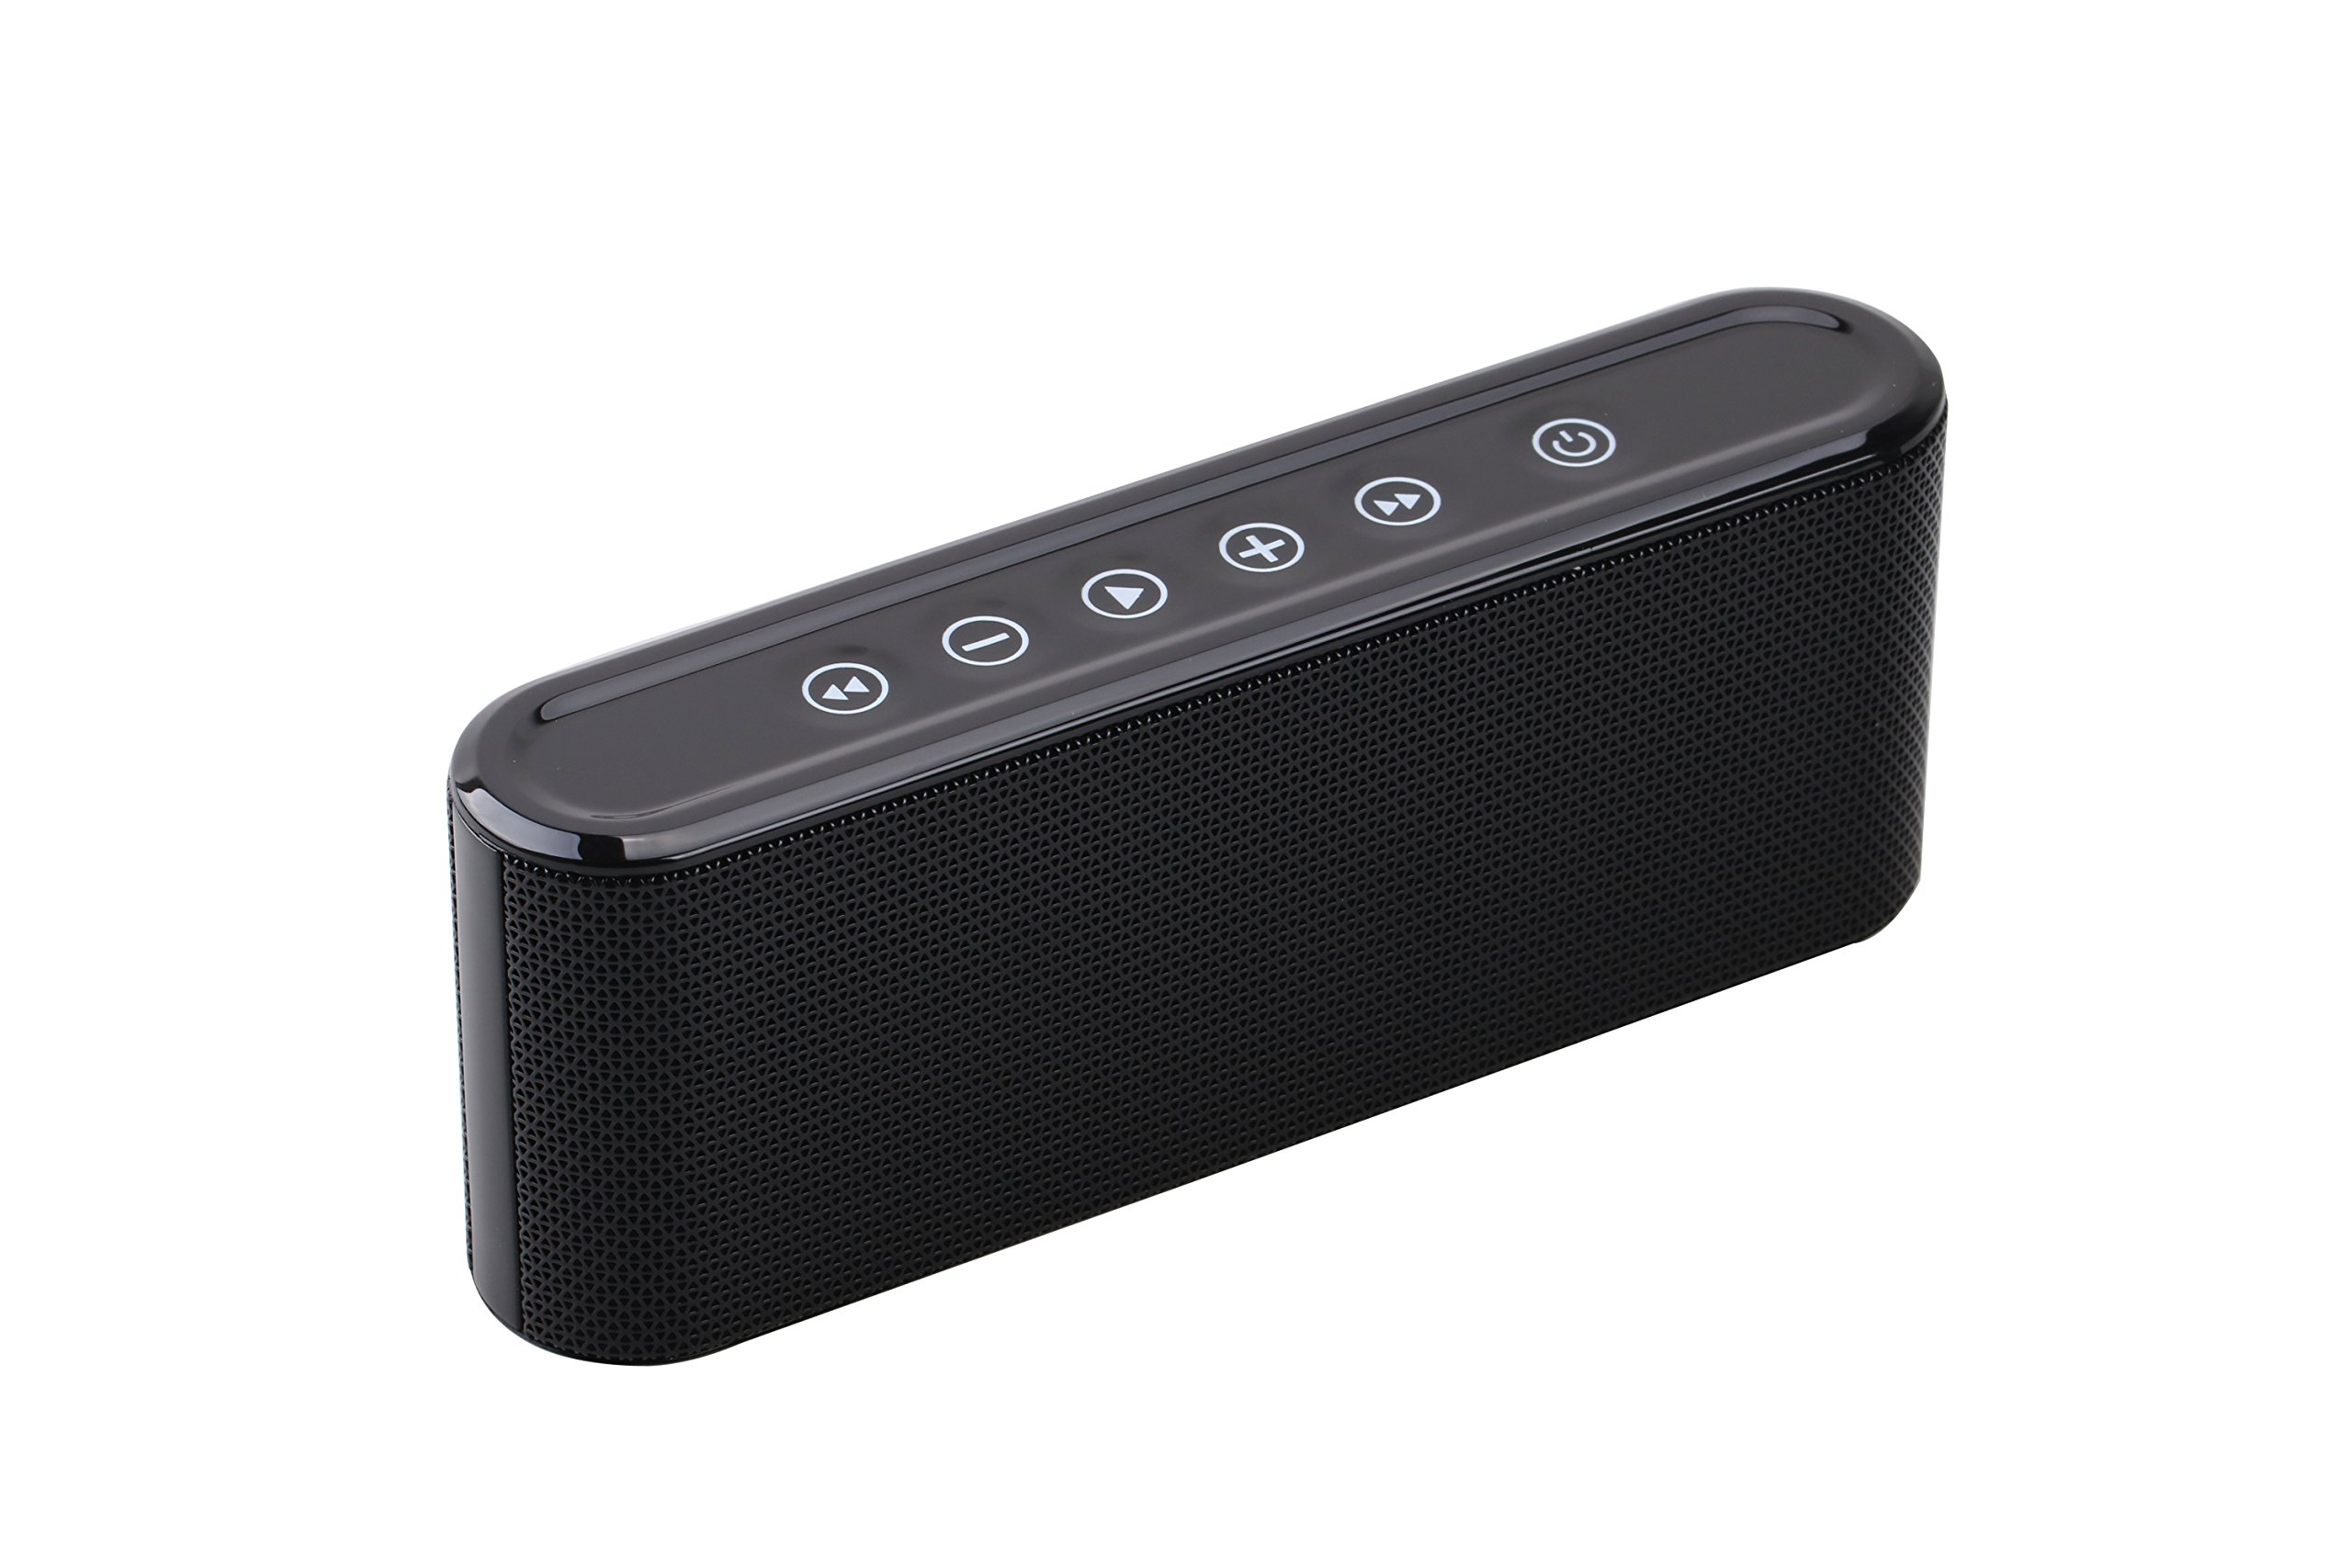 Bluetooth Speakers, 6W Touch Metal Speakers, Mini Portable Bluetooth 4.2 Wireless with Super Bass, Treble Stereo Subwoofer, Support TF Card, USB Disk, 3.5mm AUX Input,Mobile Computer Accessories